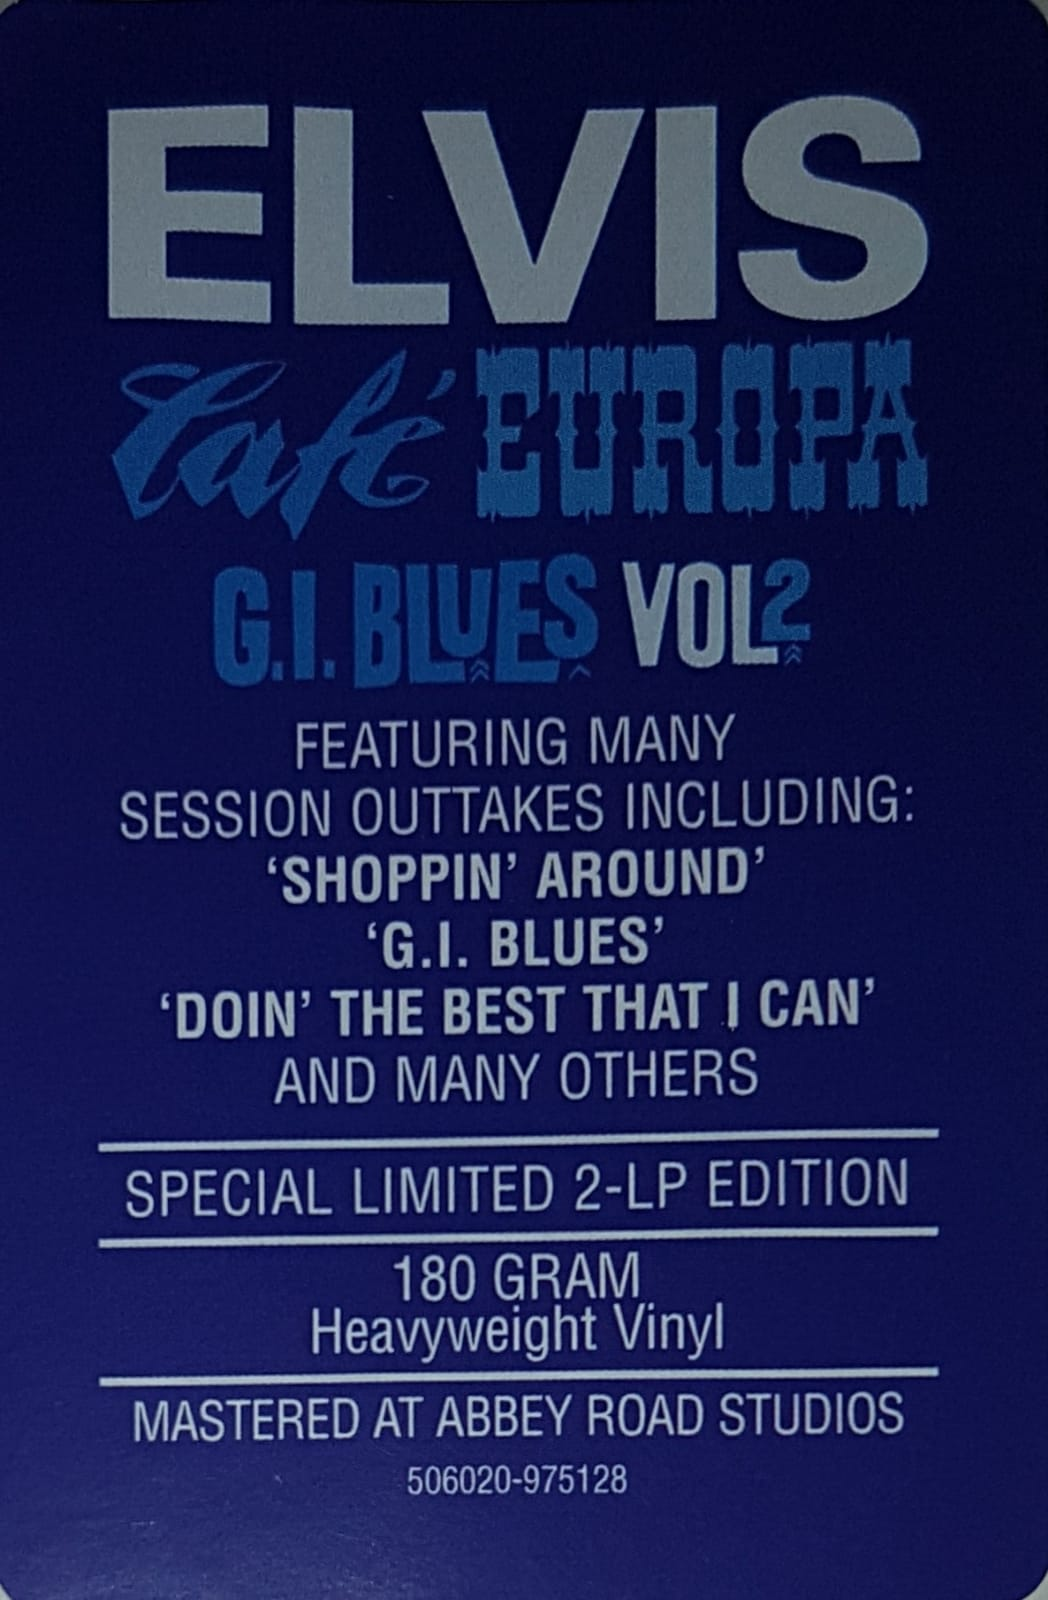 G.I. BLUES VOL. 2 - CAFÉ EUROPA SESSION Lsp-2256-3ibukzj